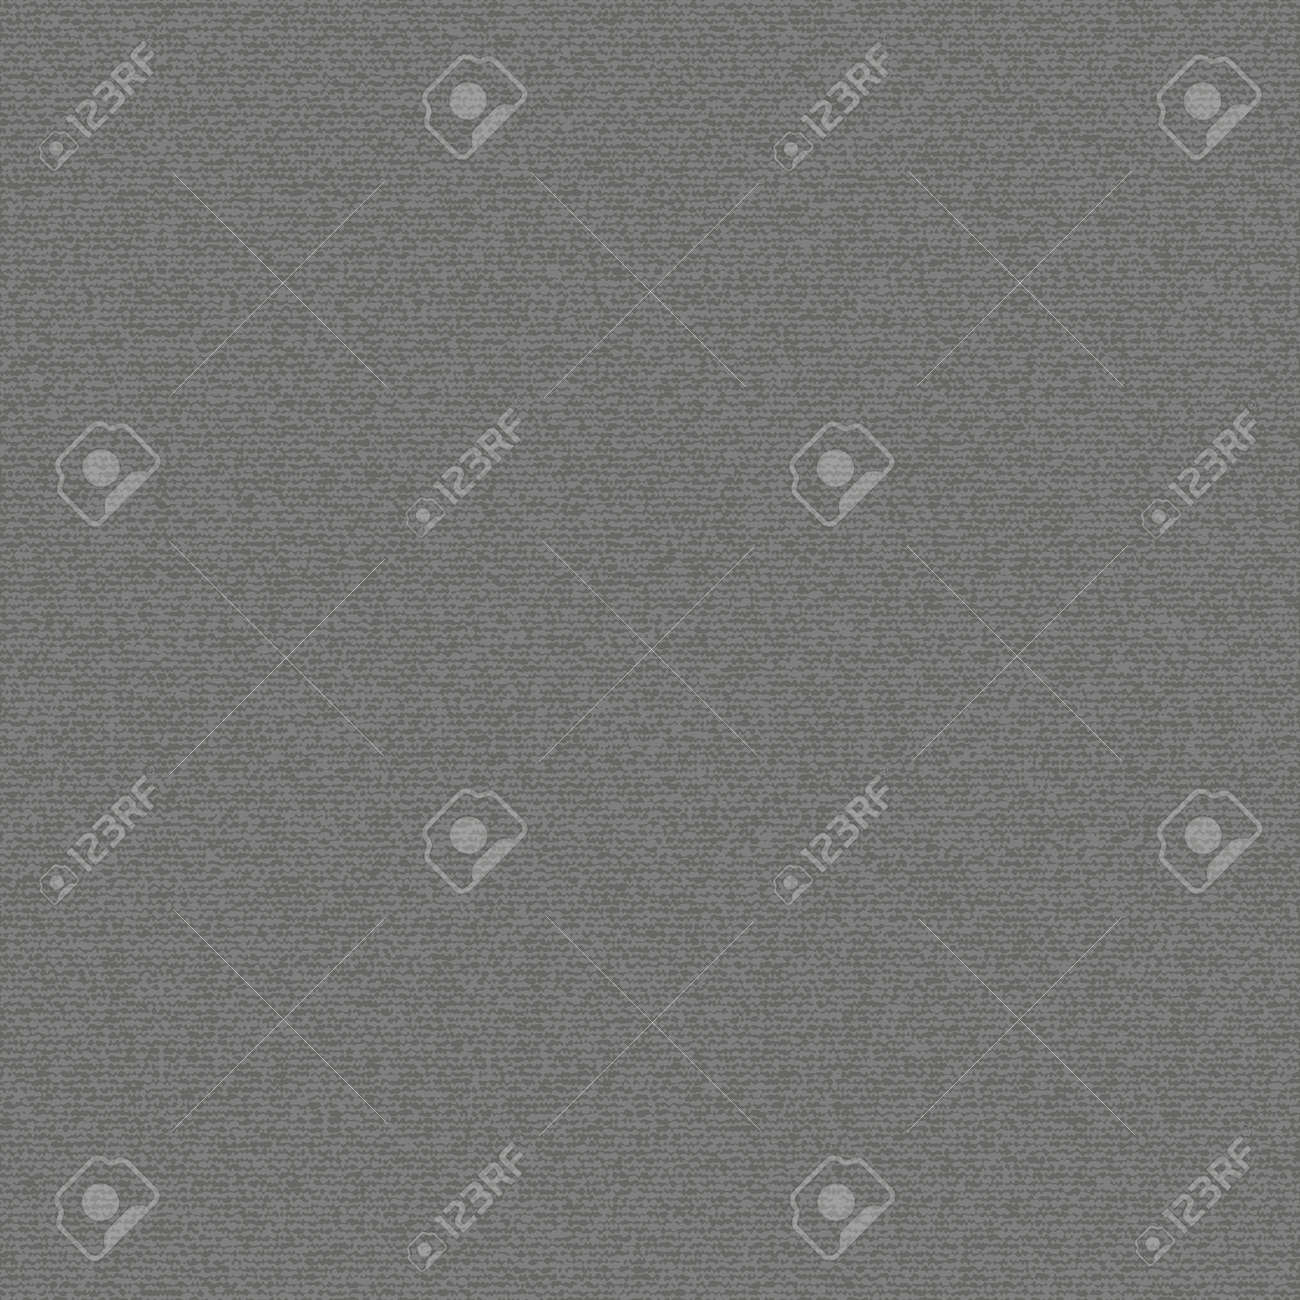 Grey noise on a gray background, abstract pattern, texture  Modern